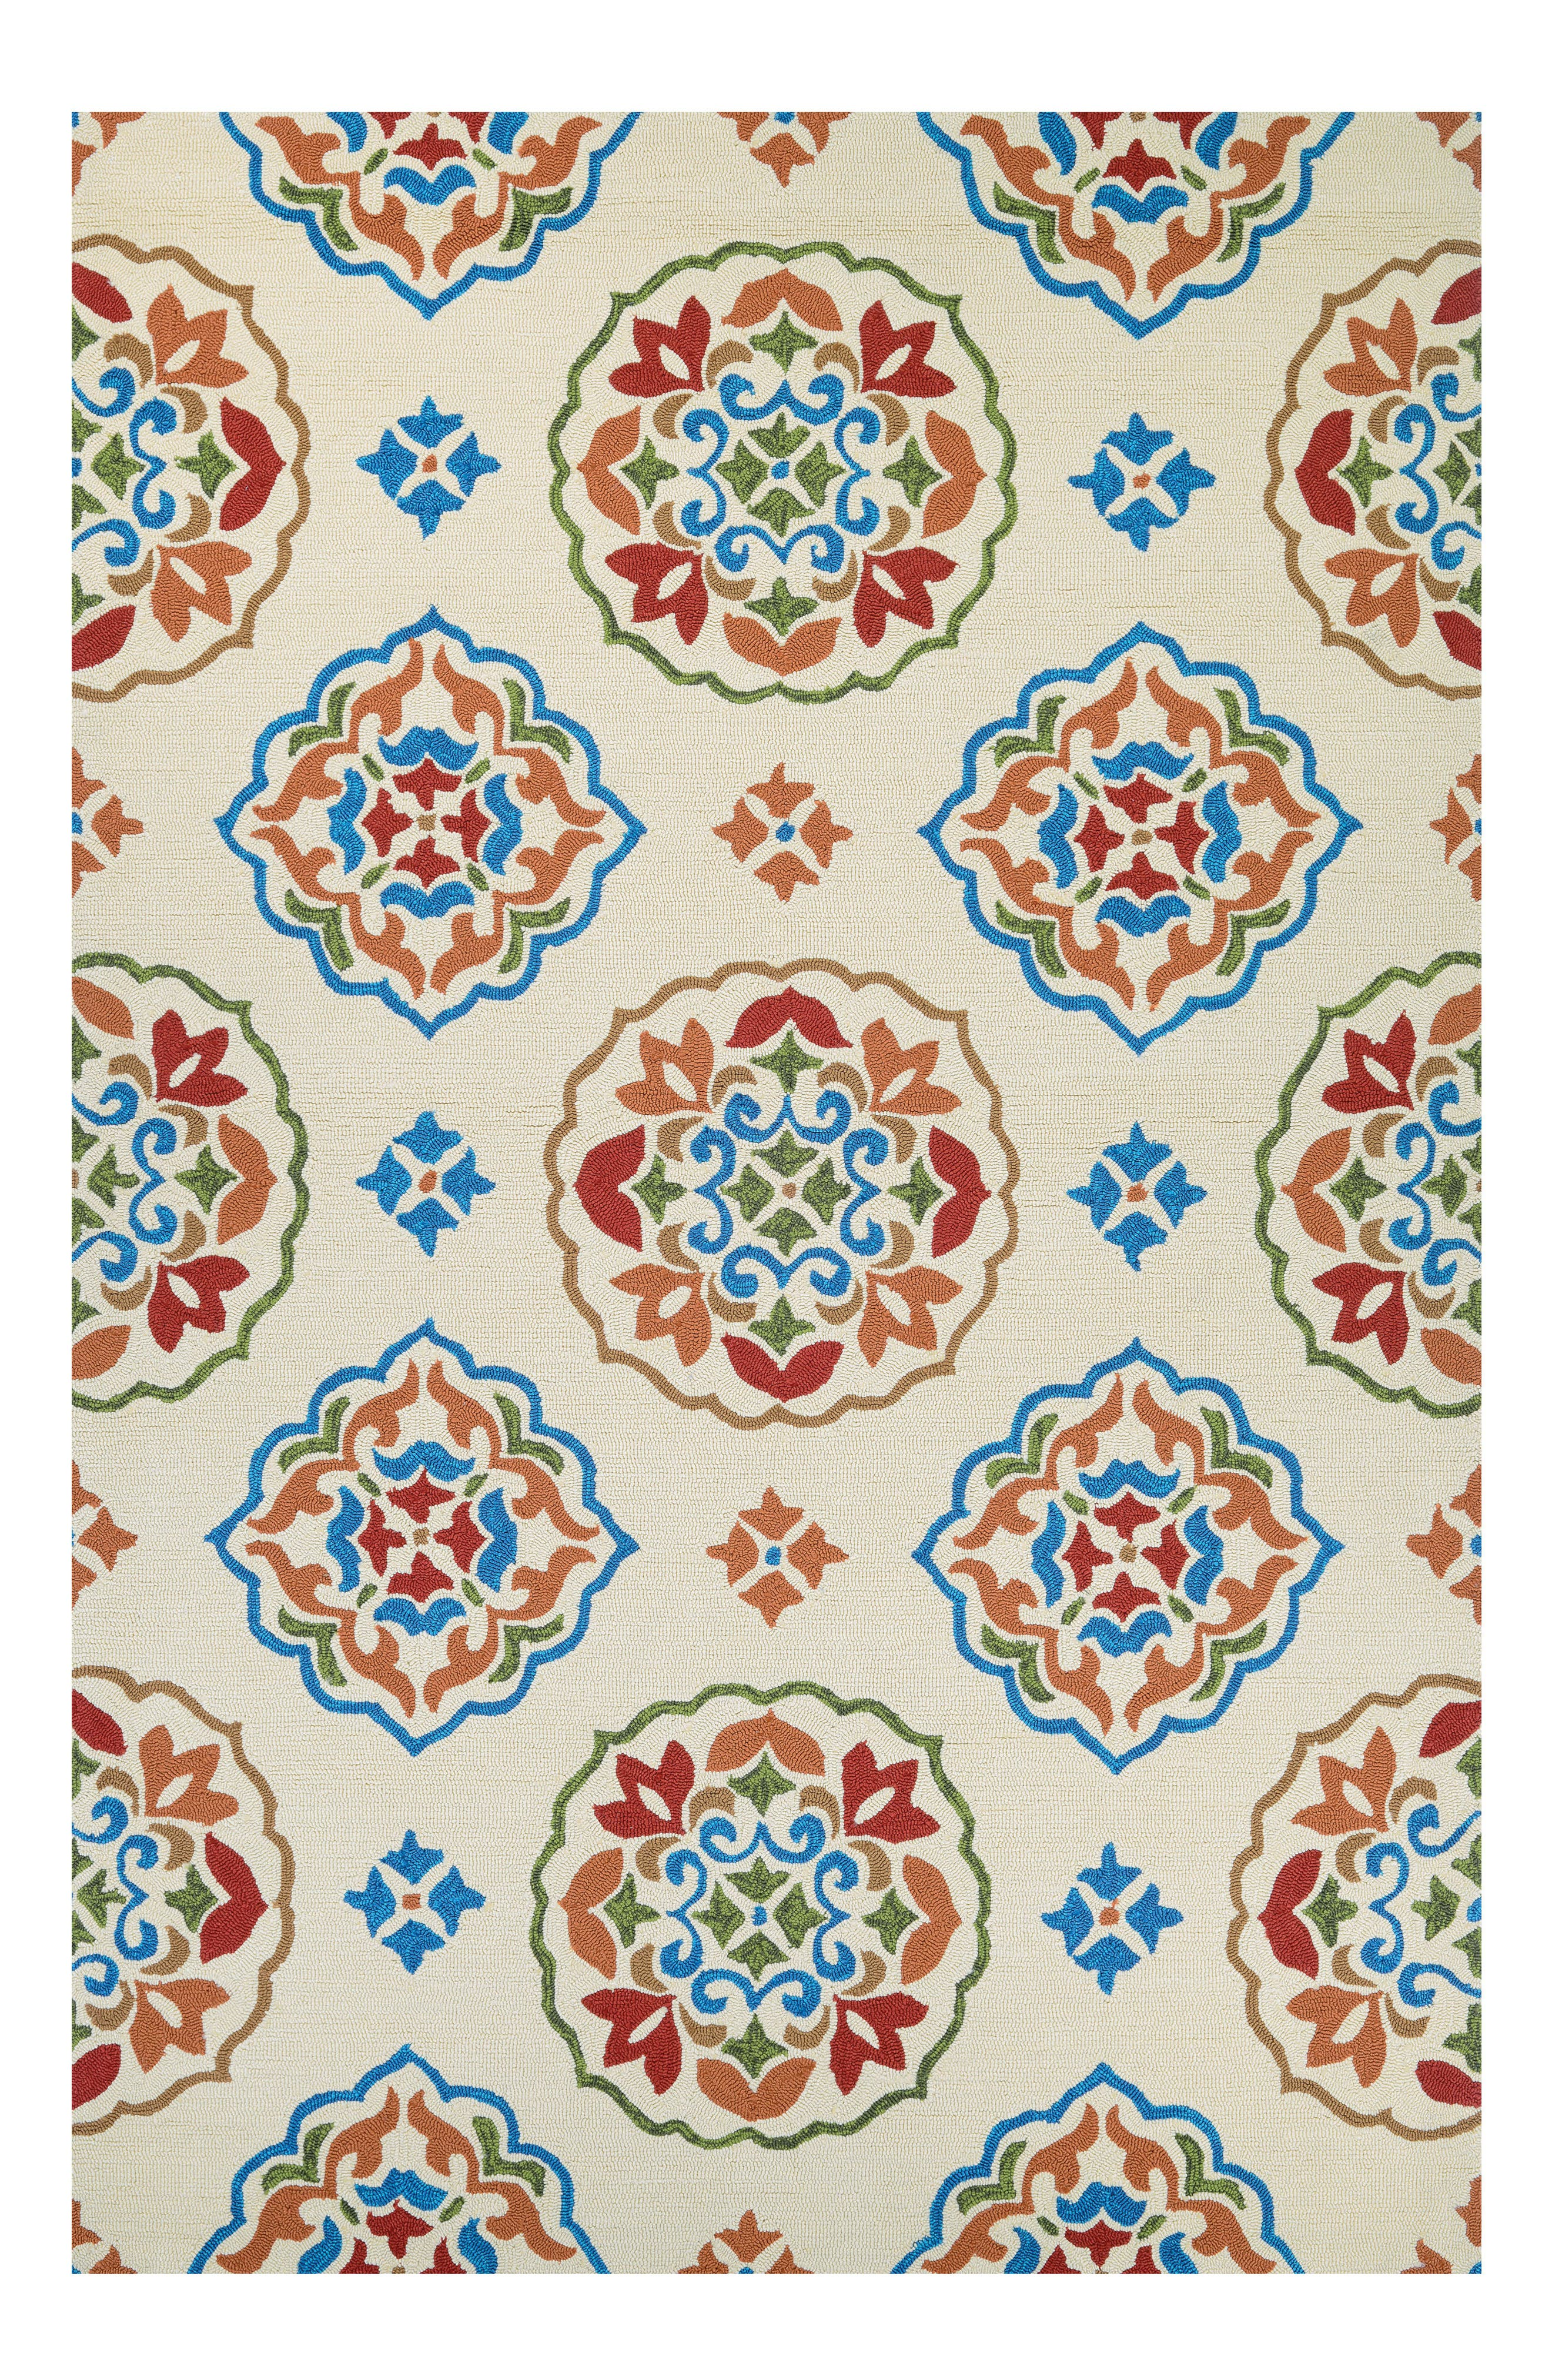 San Clemente Indoor/Outdoor Rug,                             Main thumbnail 1, color,                             Cream/ Red